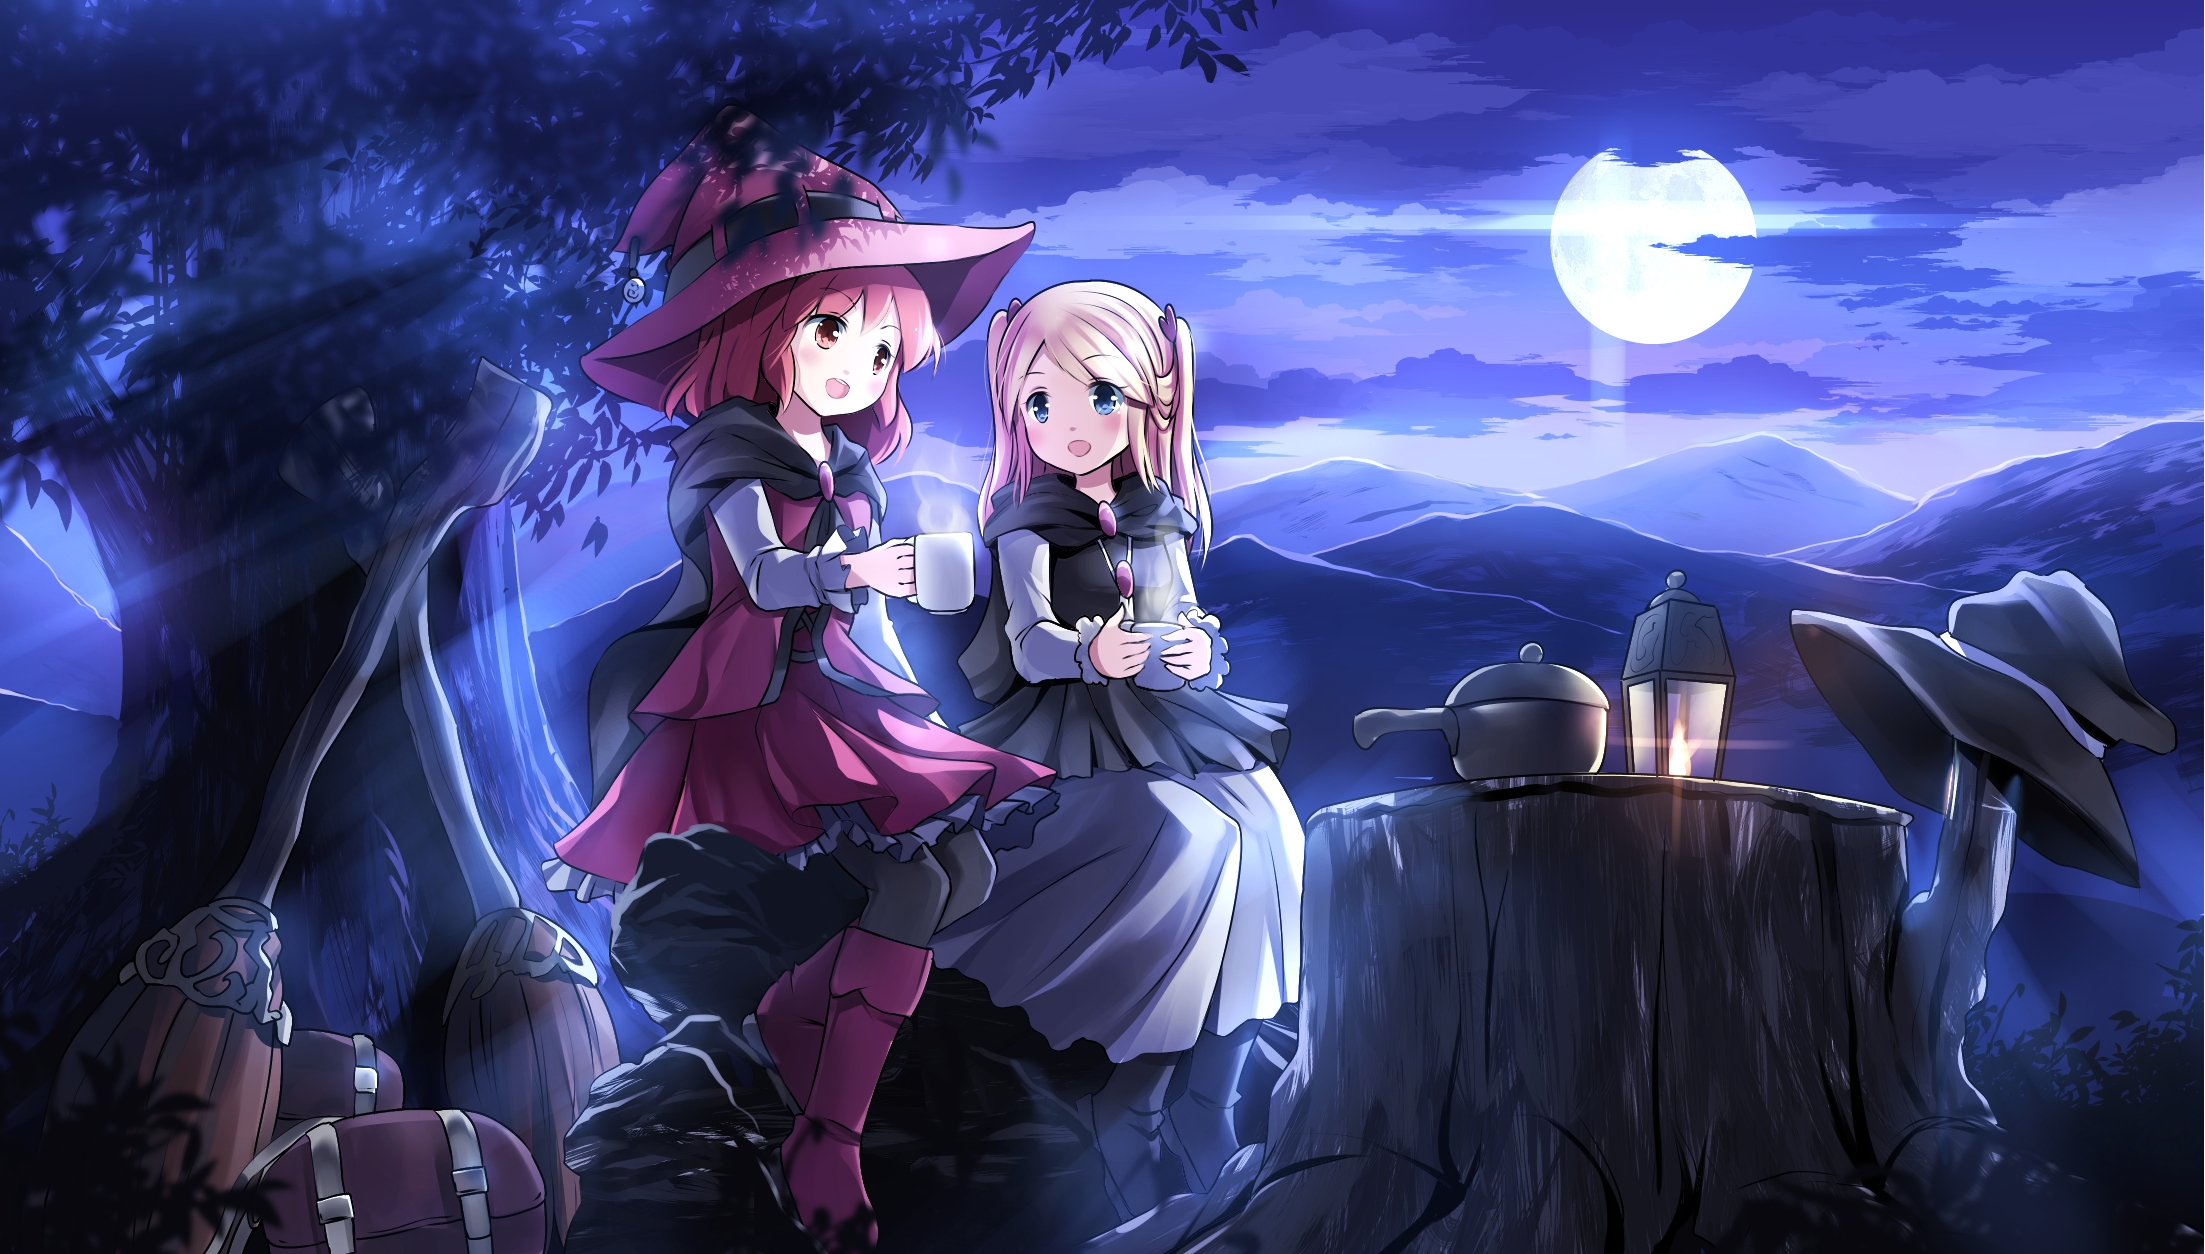 Rich Anime Wallpapers Wallpaper Cave